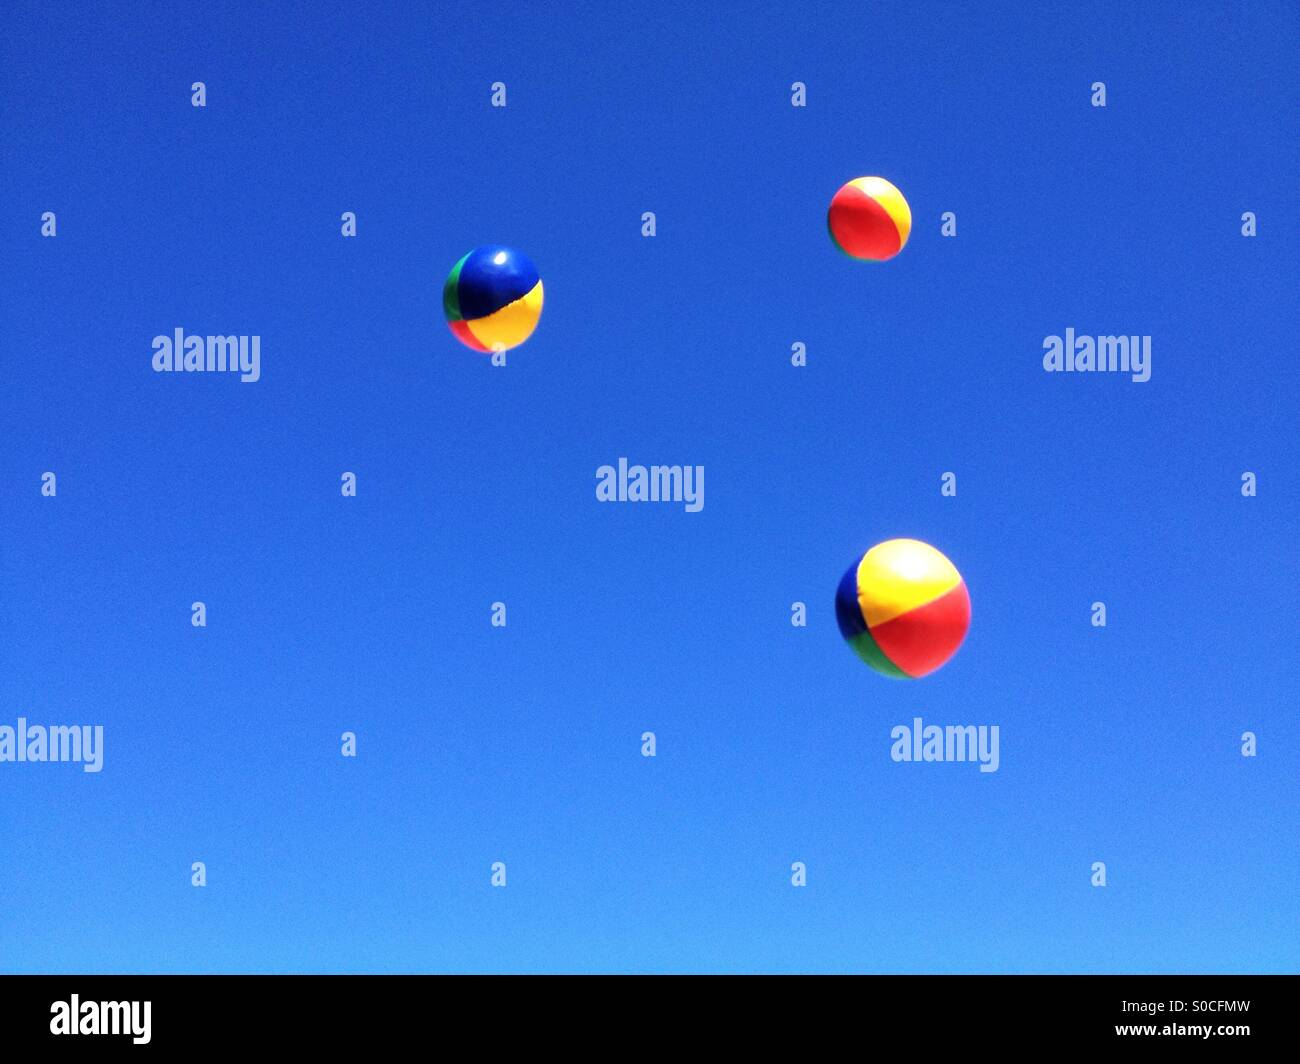 Juggling balls in the air - Stock Image